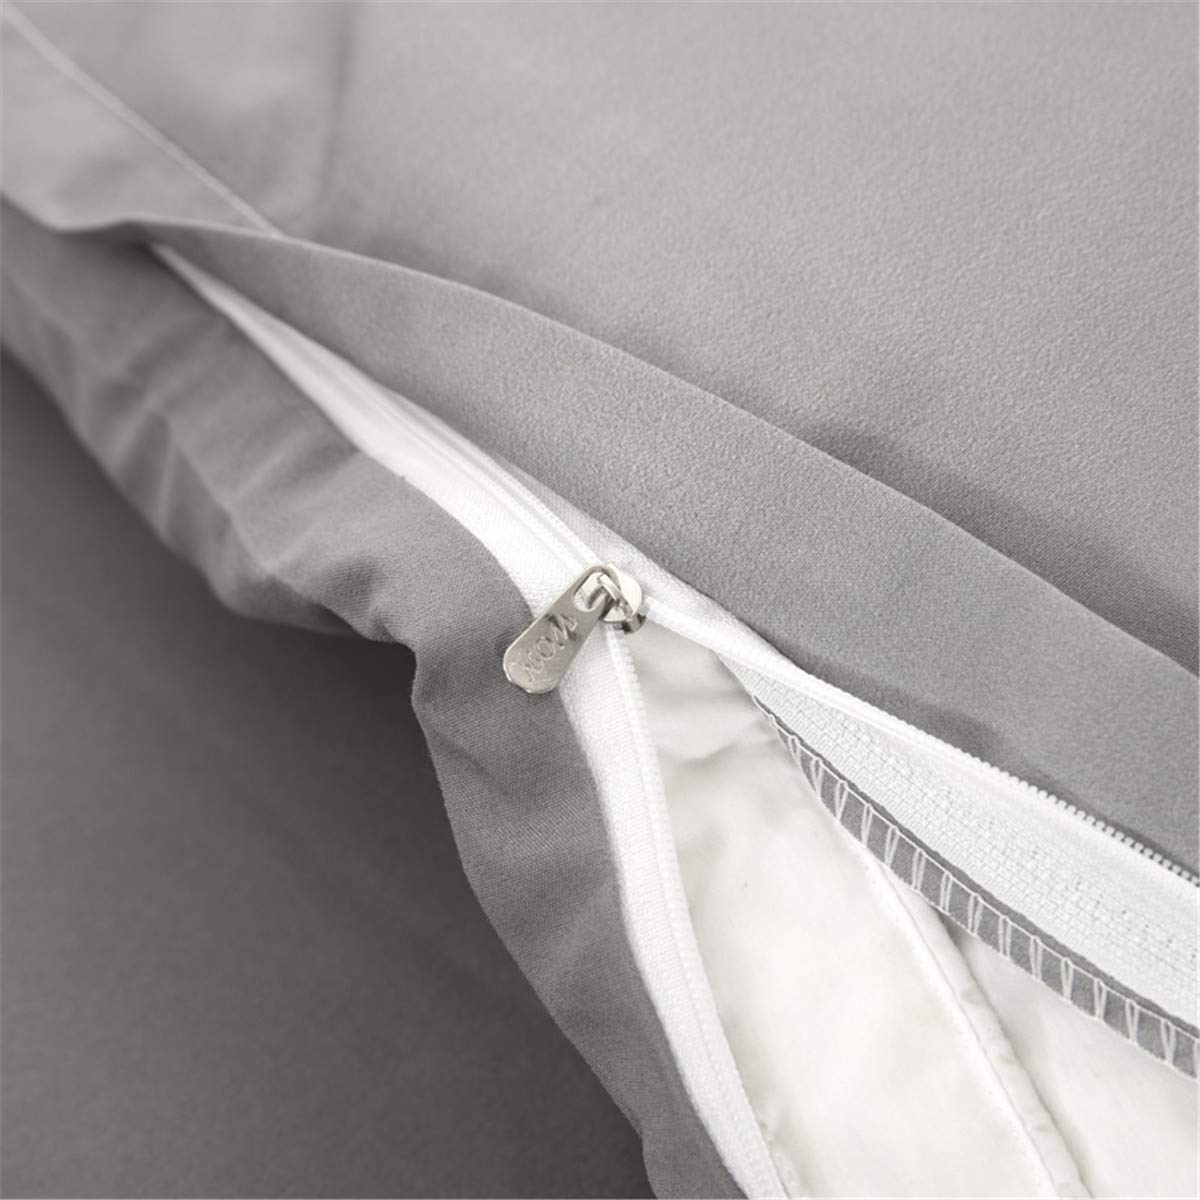 Guidear Grey White Quilt Duvet Cover with Zipper Closure 3 Pieces Hypoallergenic Soft Microfiber Duvet Cover with 2 Pillowcase Double 200 200cm